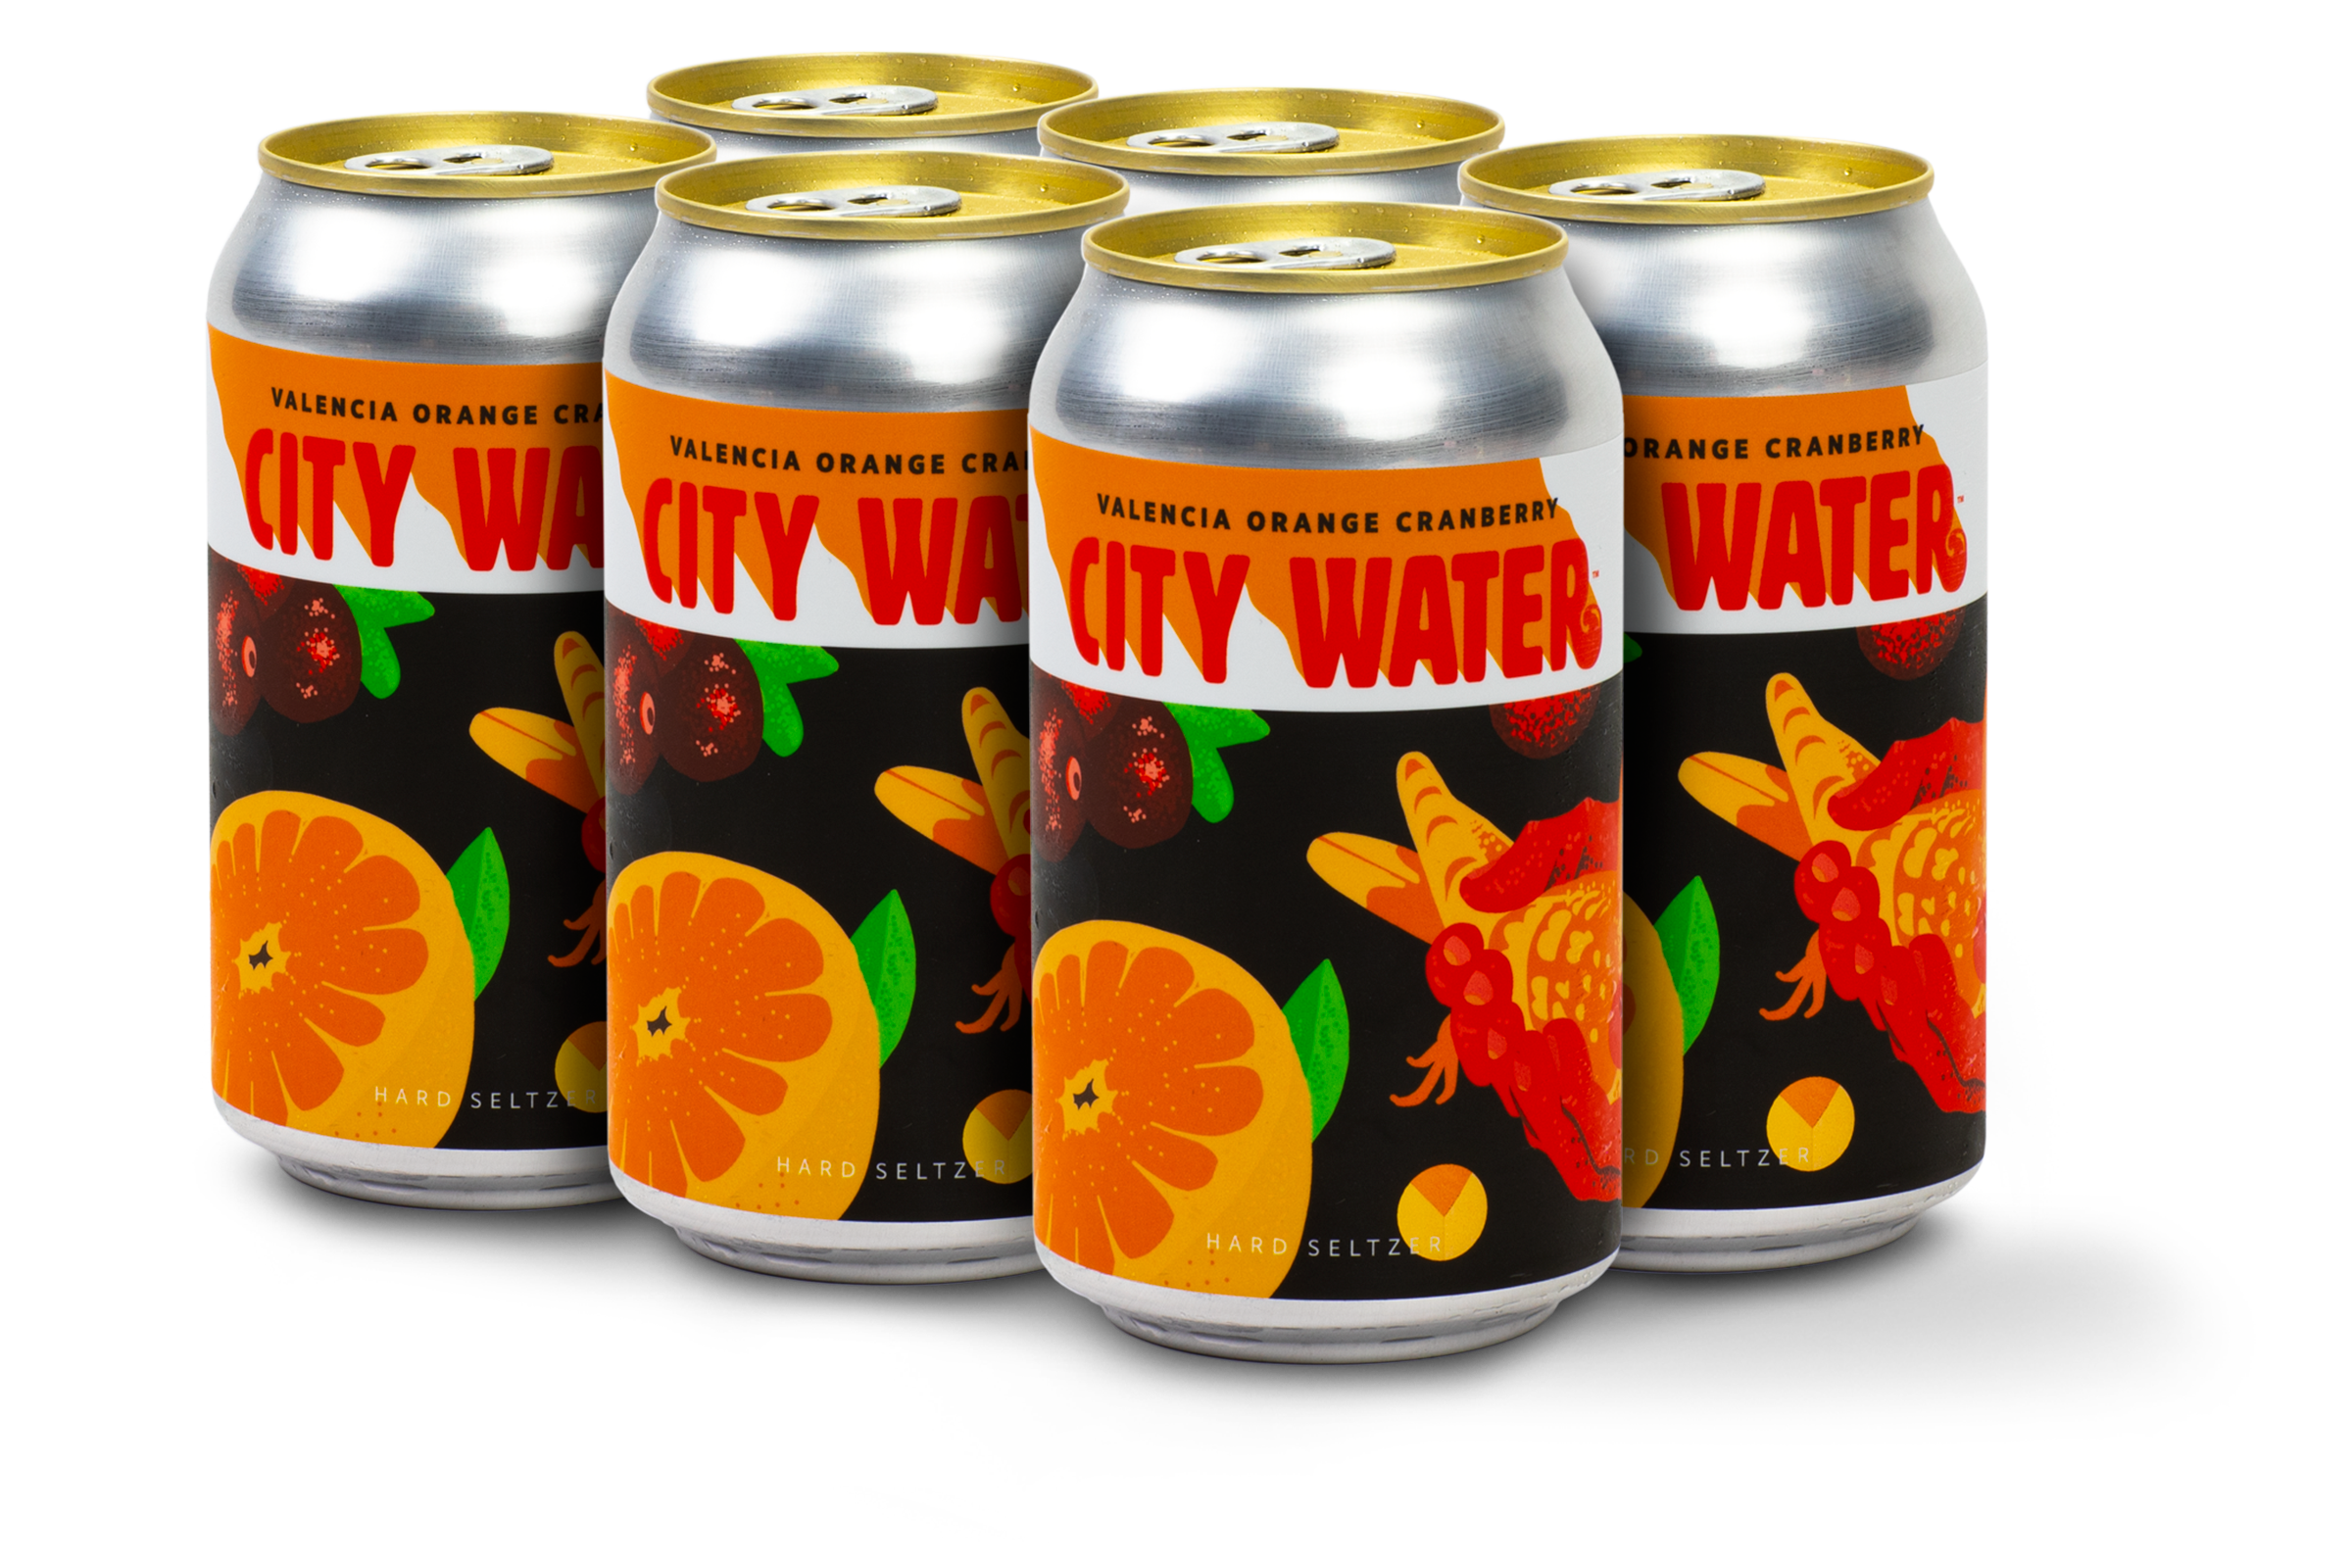 City Water Valencia Orange Cranberry 6-pack